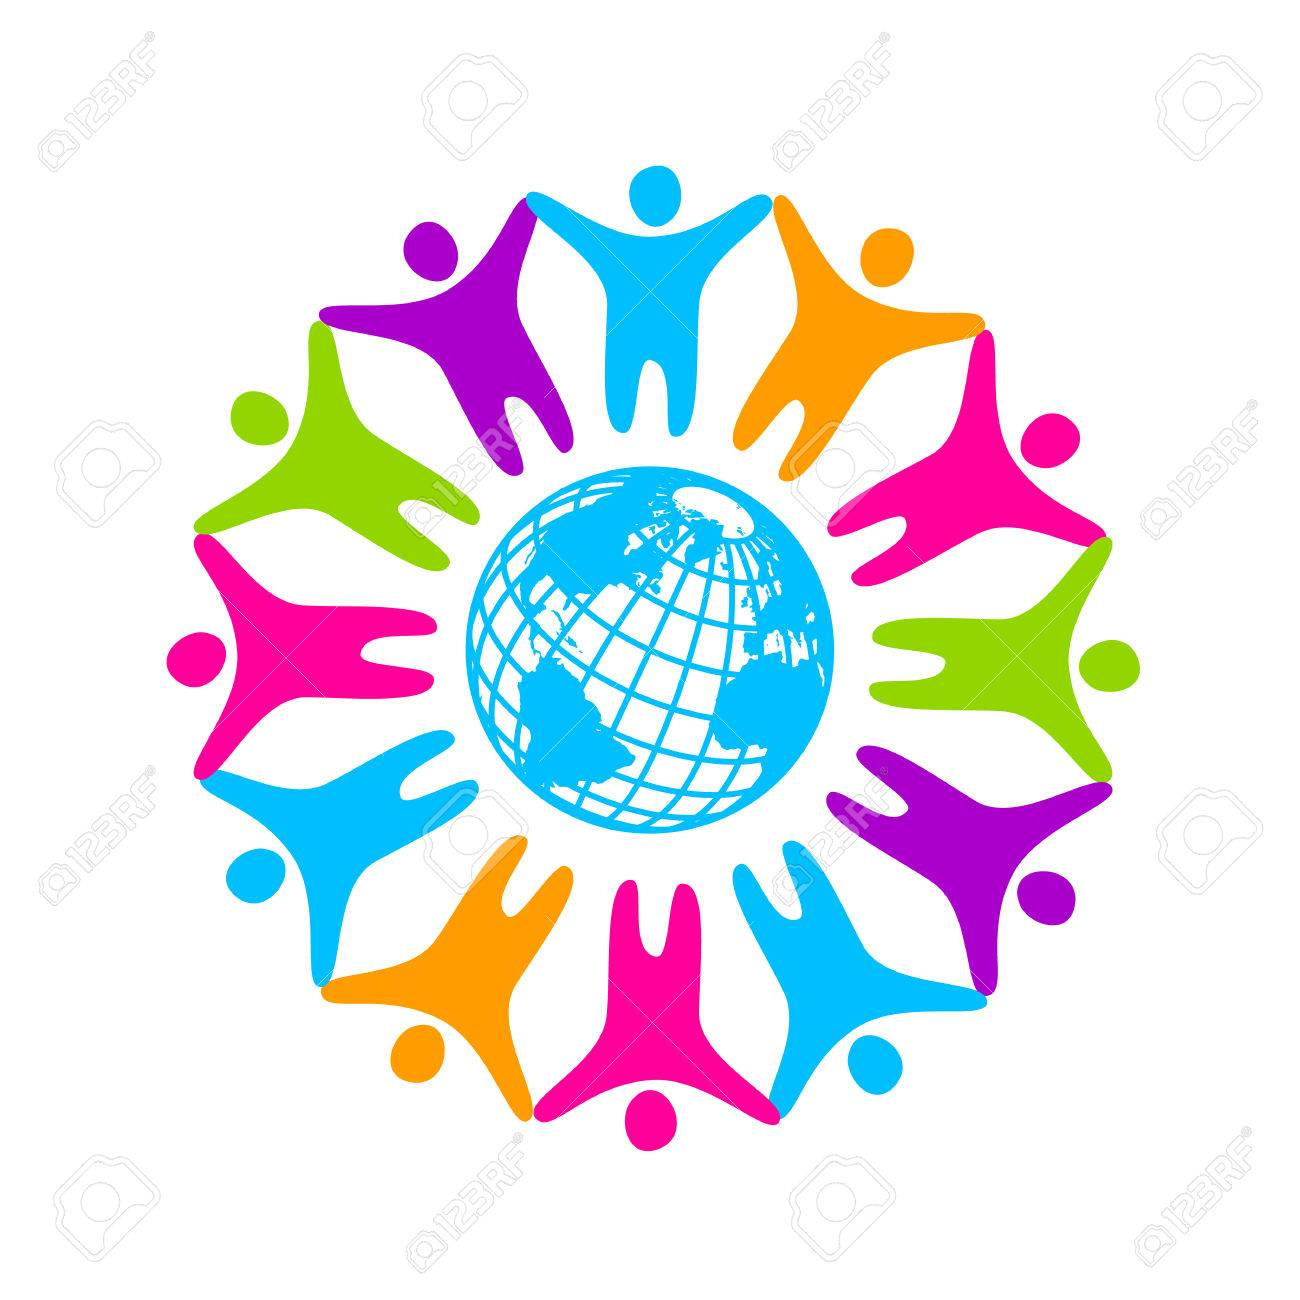 people around the planet template logo for the company association